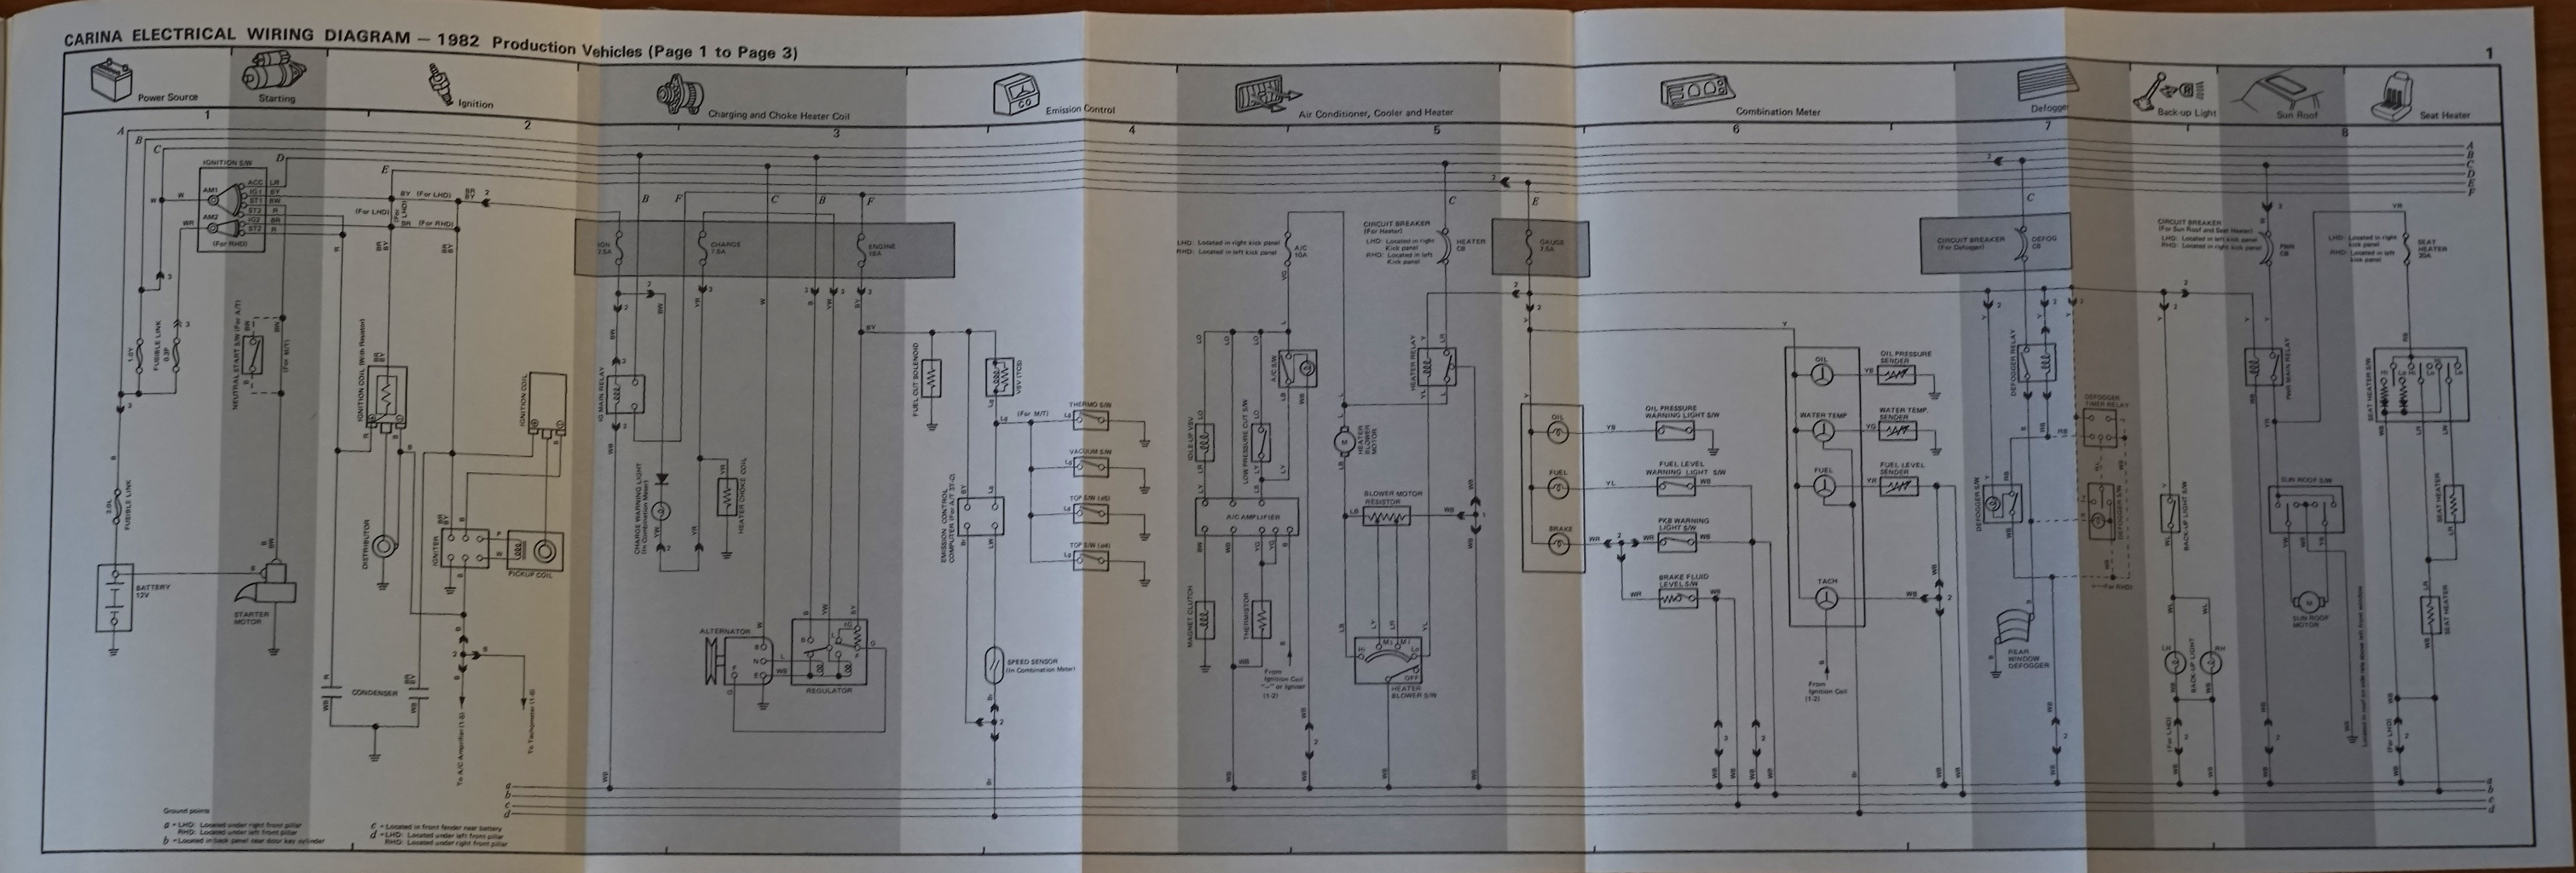 Ae86 Wiring Diagram And Schematics Club4ag Forum Topics Electric Fan On Fuse Board Image Aeu86 Looking For A Ta60